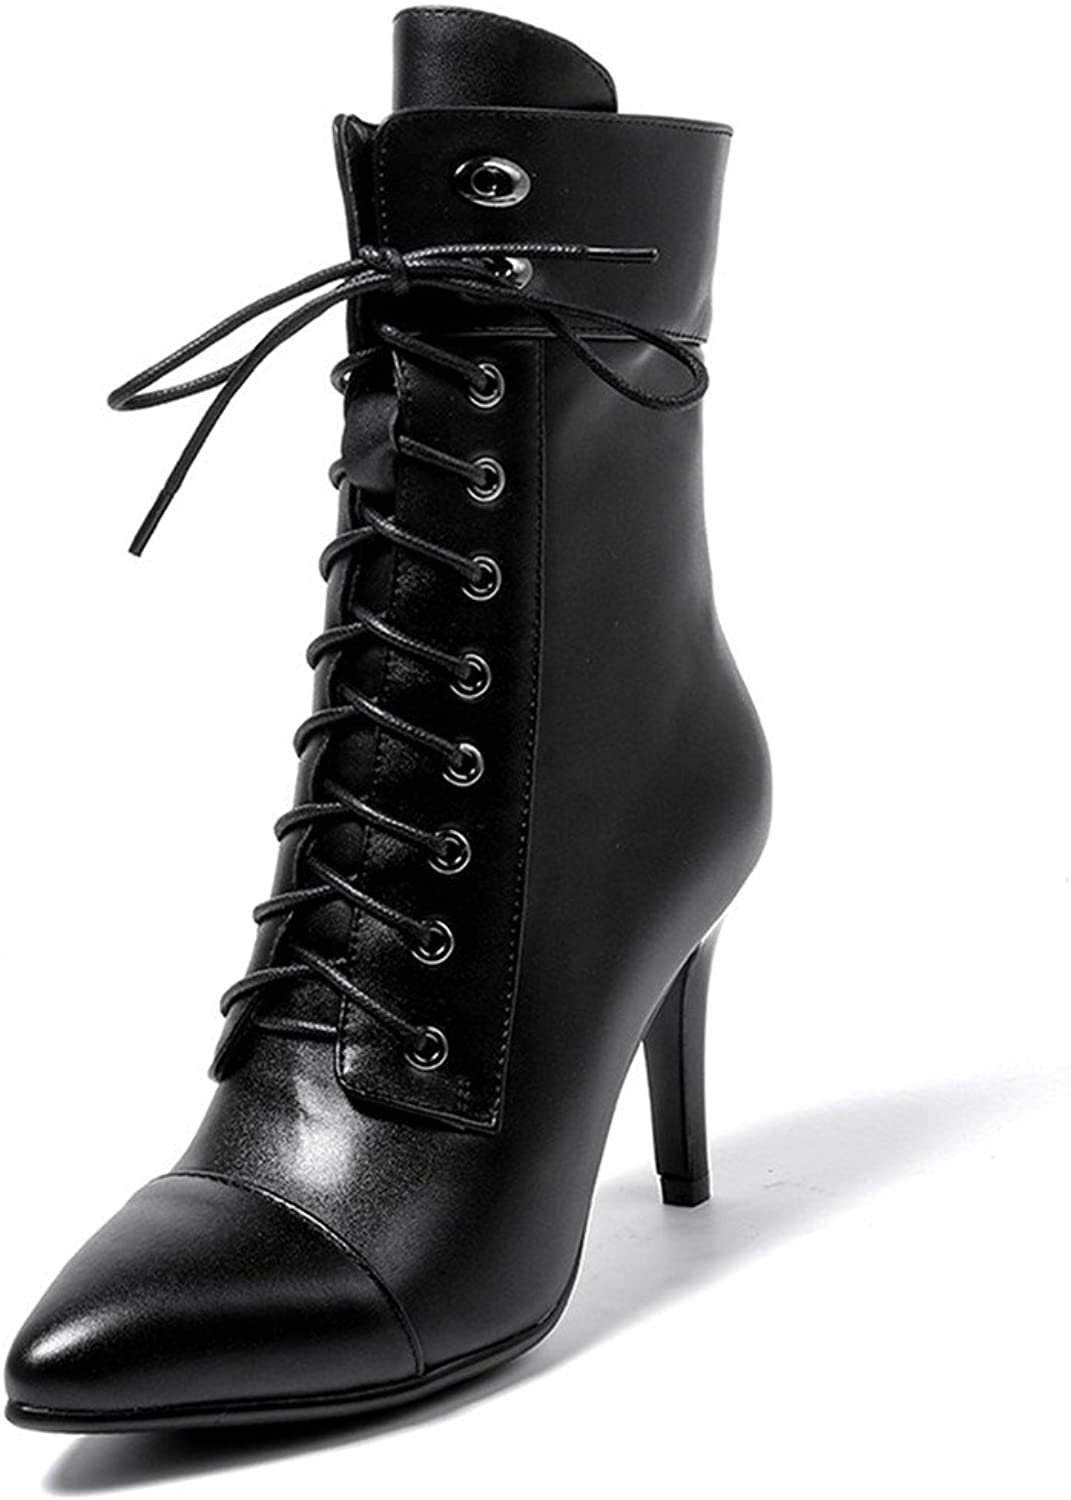 Nine Seven Cow Leather Women's Pointed Toe Stiletto Heel Classic Lace Up Handmade Dress Mid Calf Boots